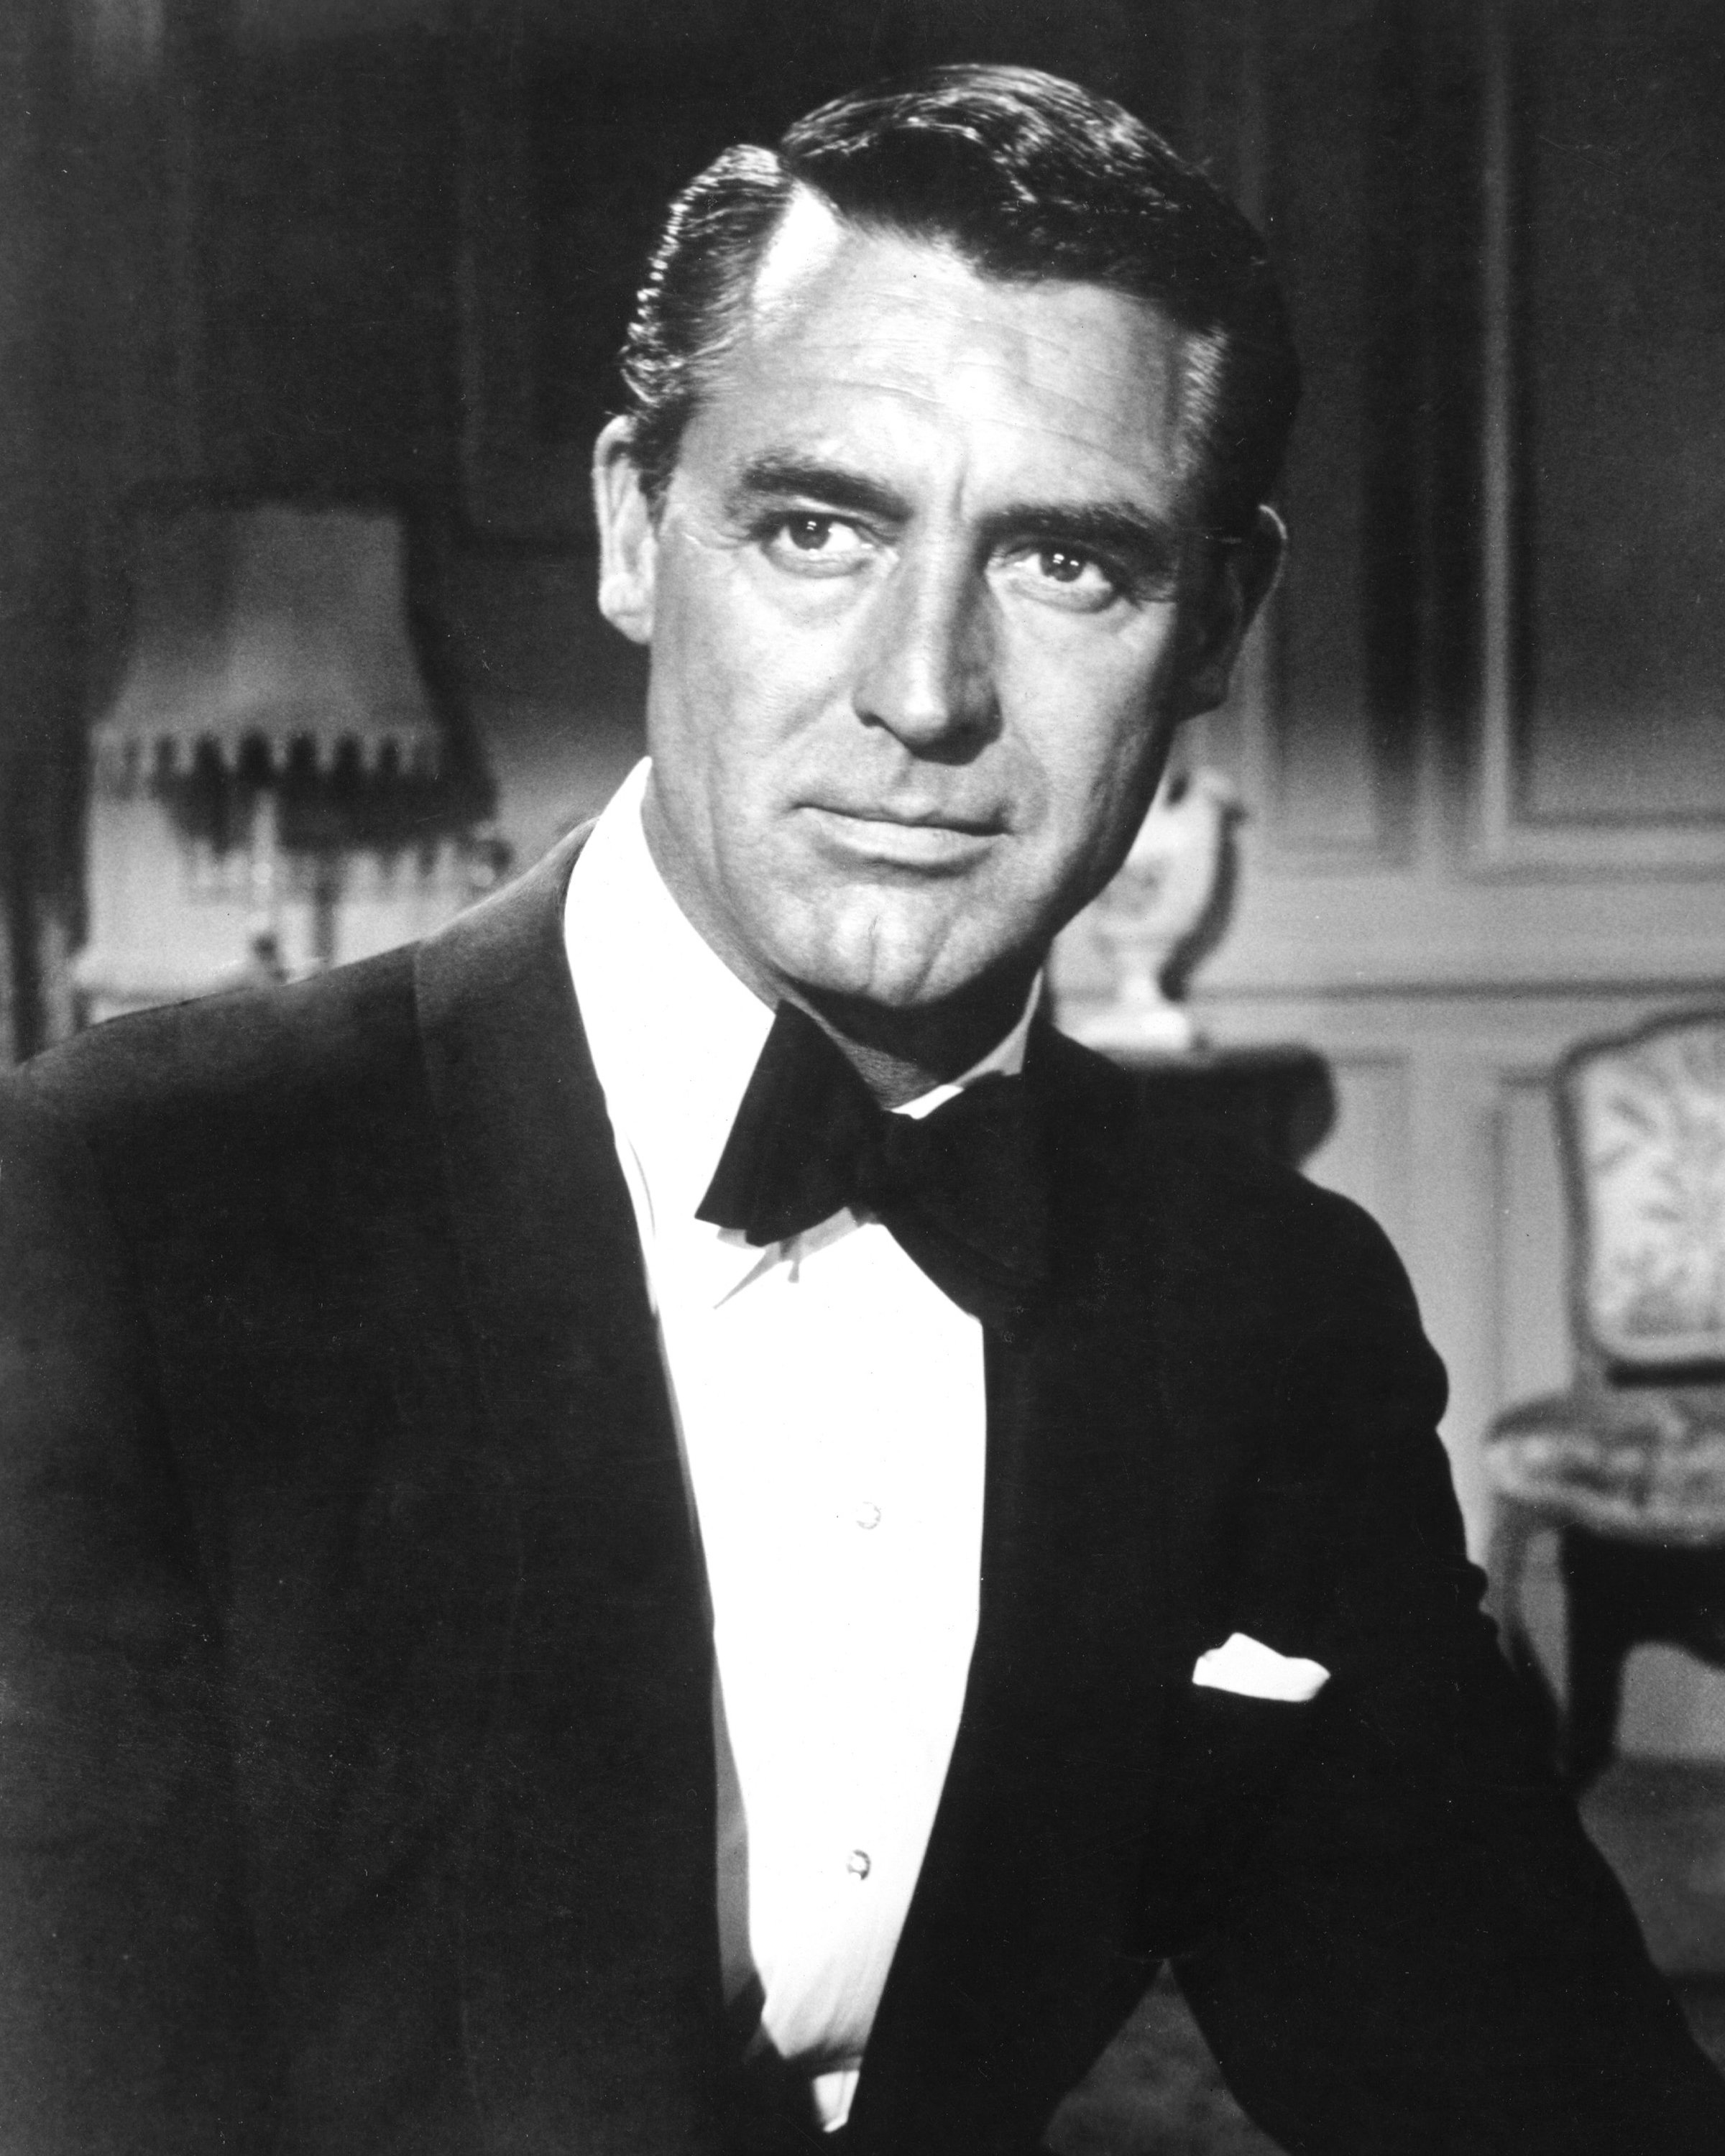 British-American actor Cary Grant (1904 - 1986) in a scene from the film 'Indiscreet', directed by Stanley Donen, 1958. | Source: Getty Images